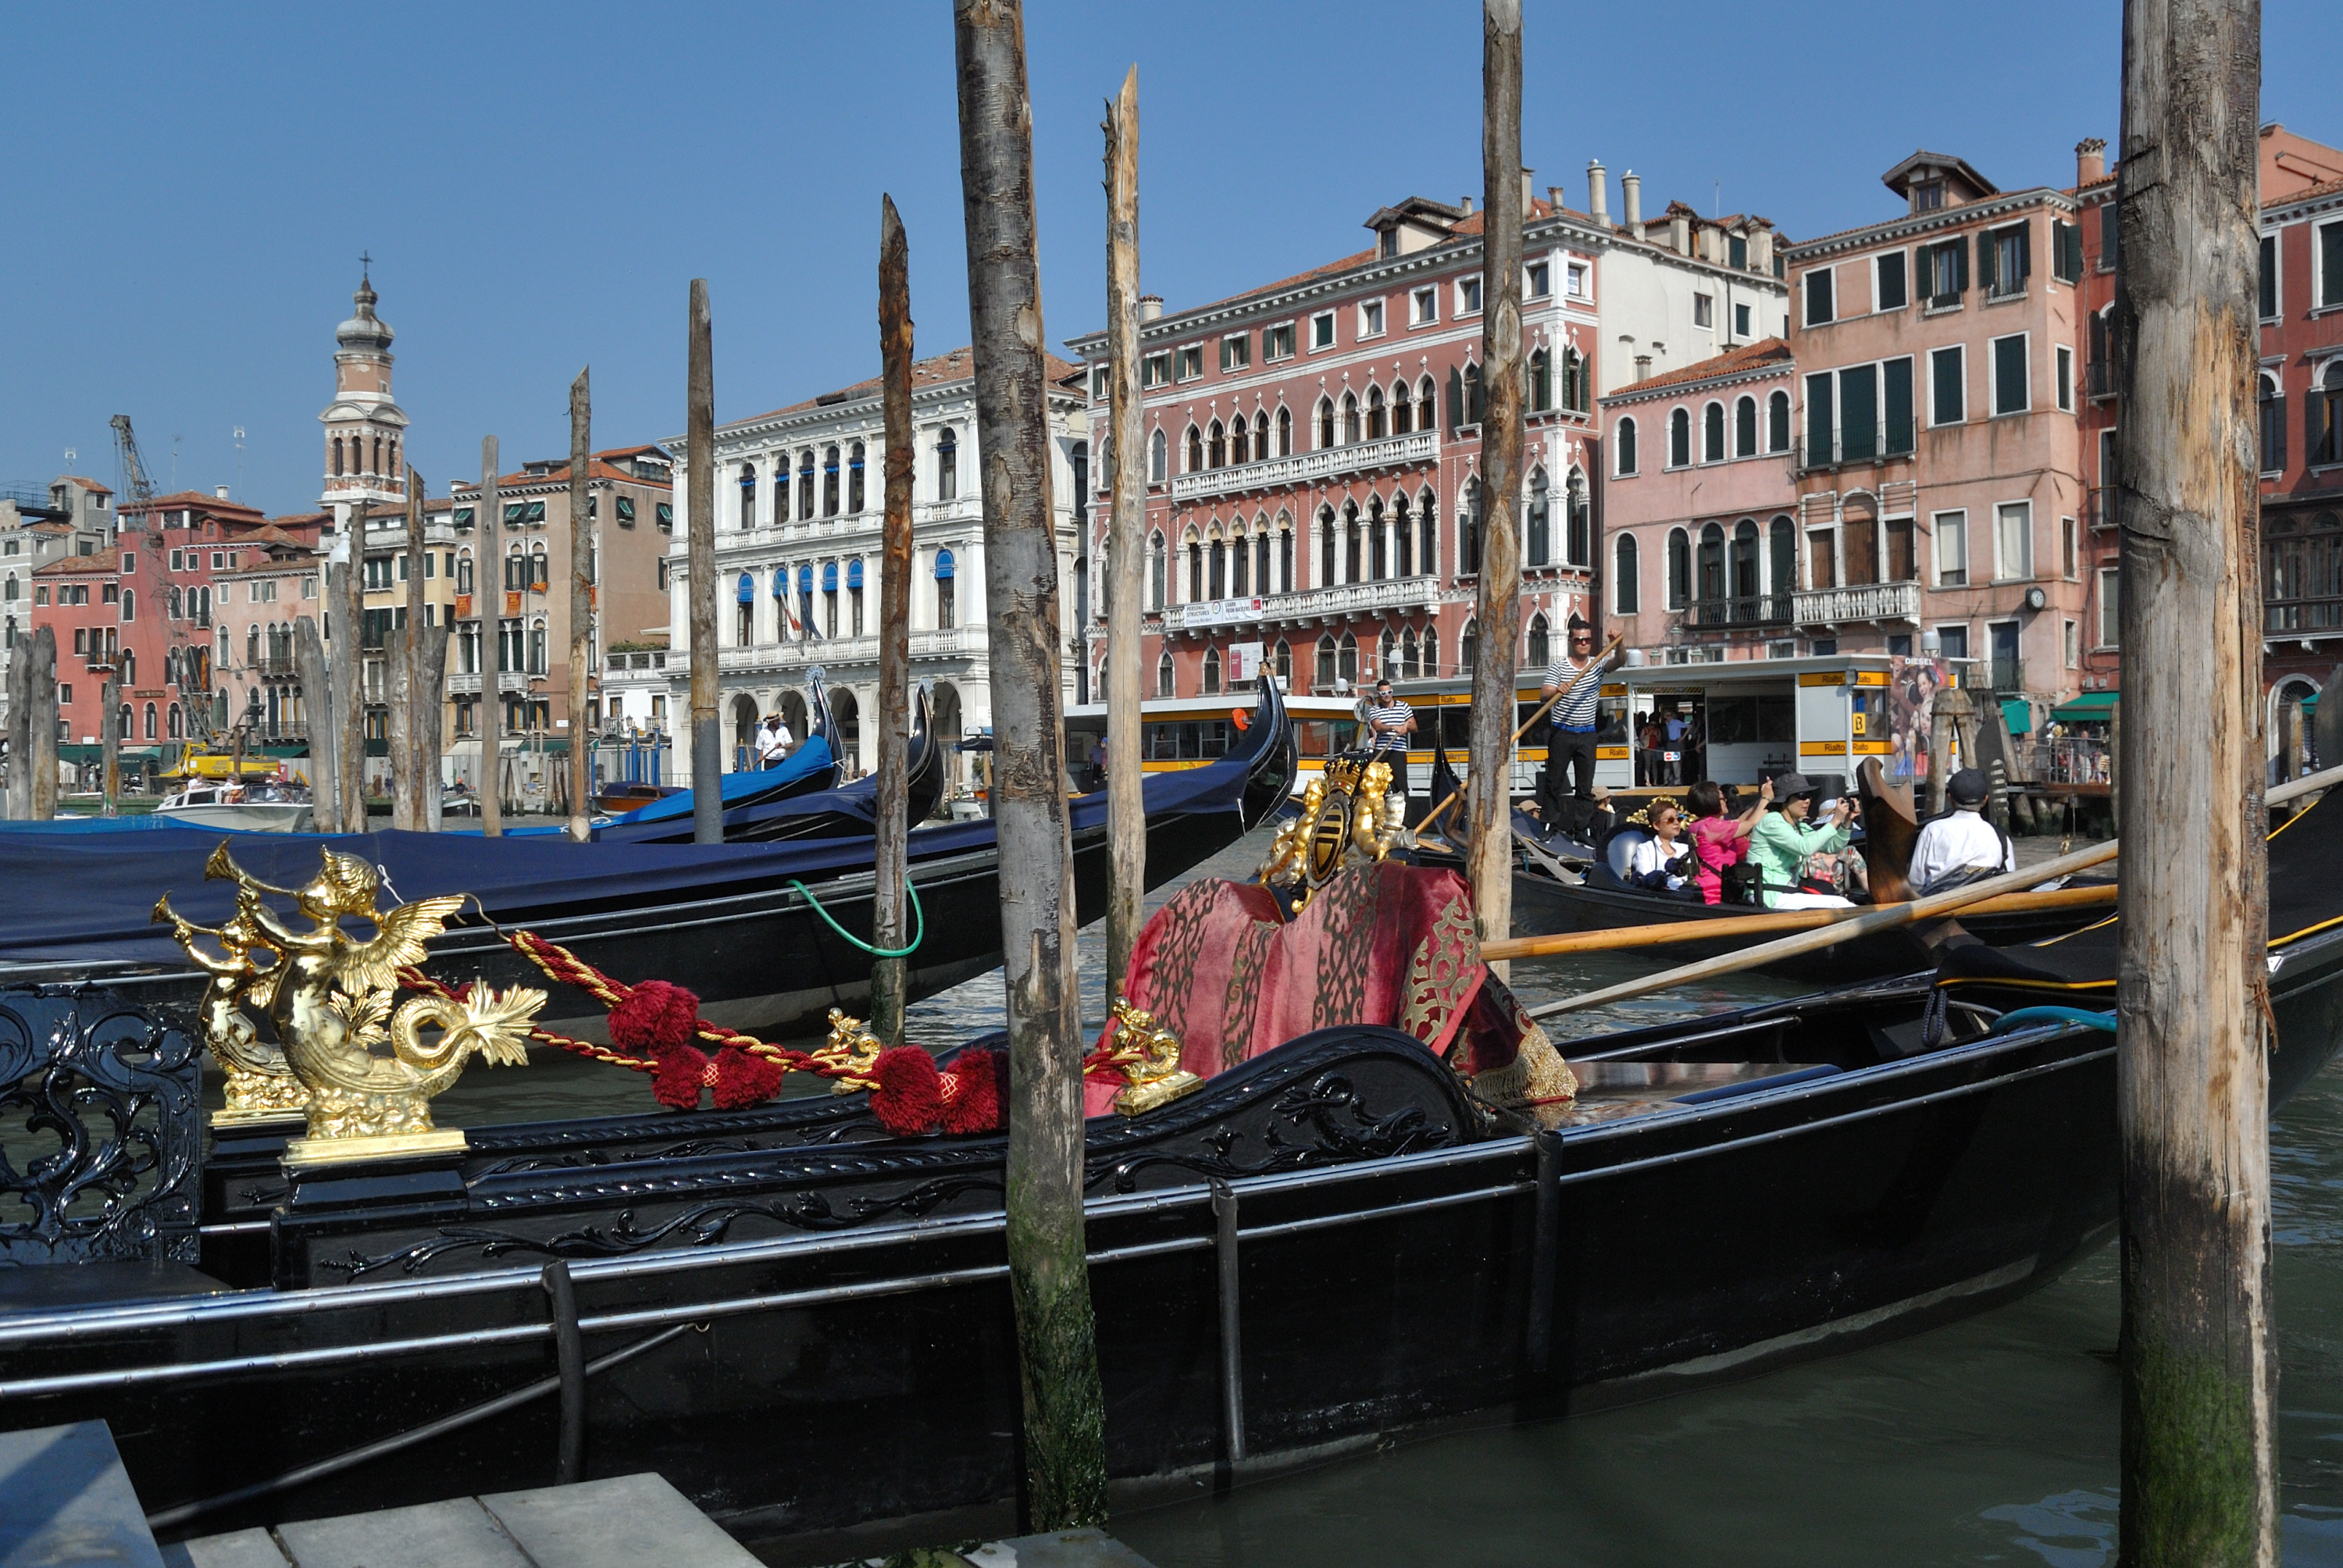 Gondolas at the Grand Canal